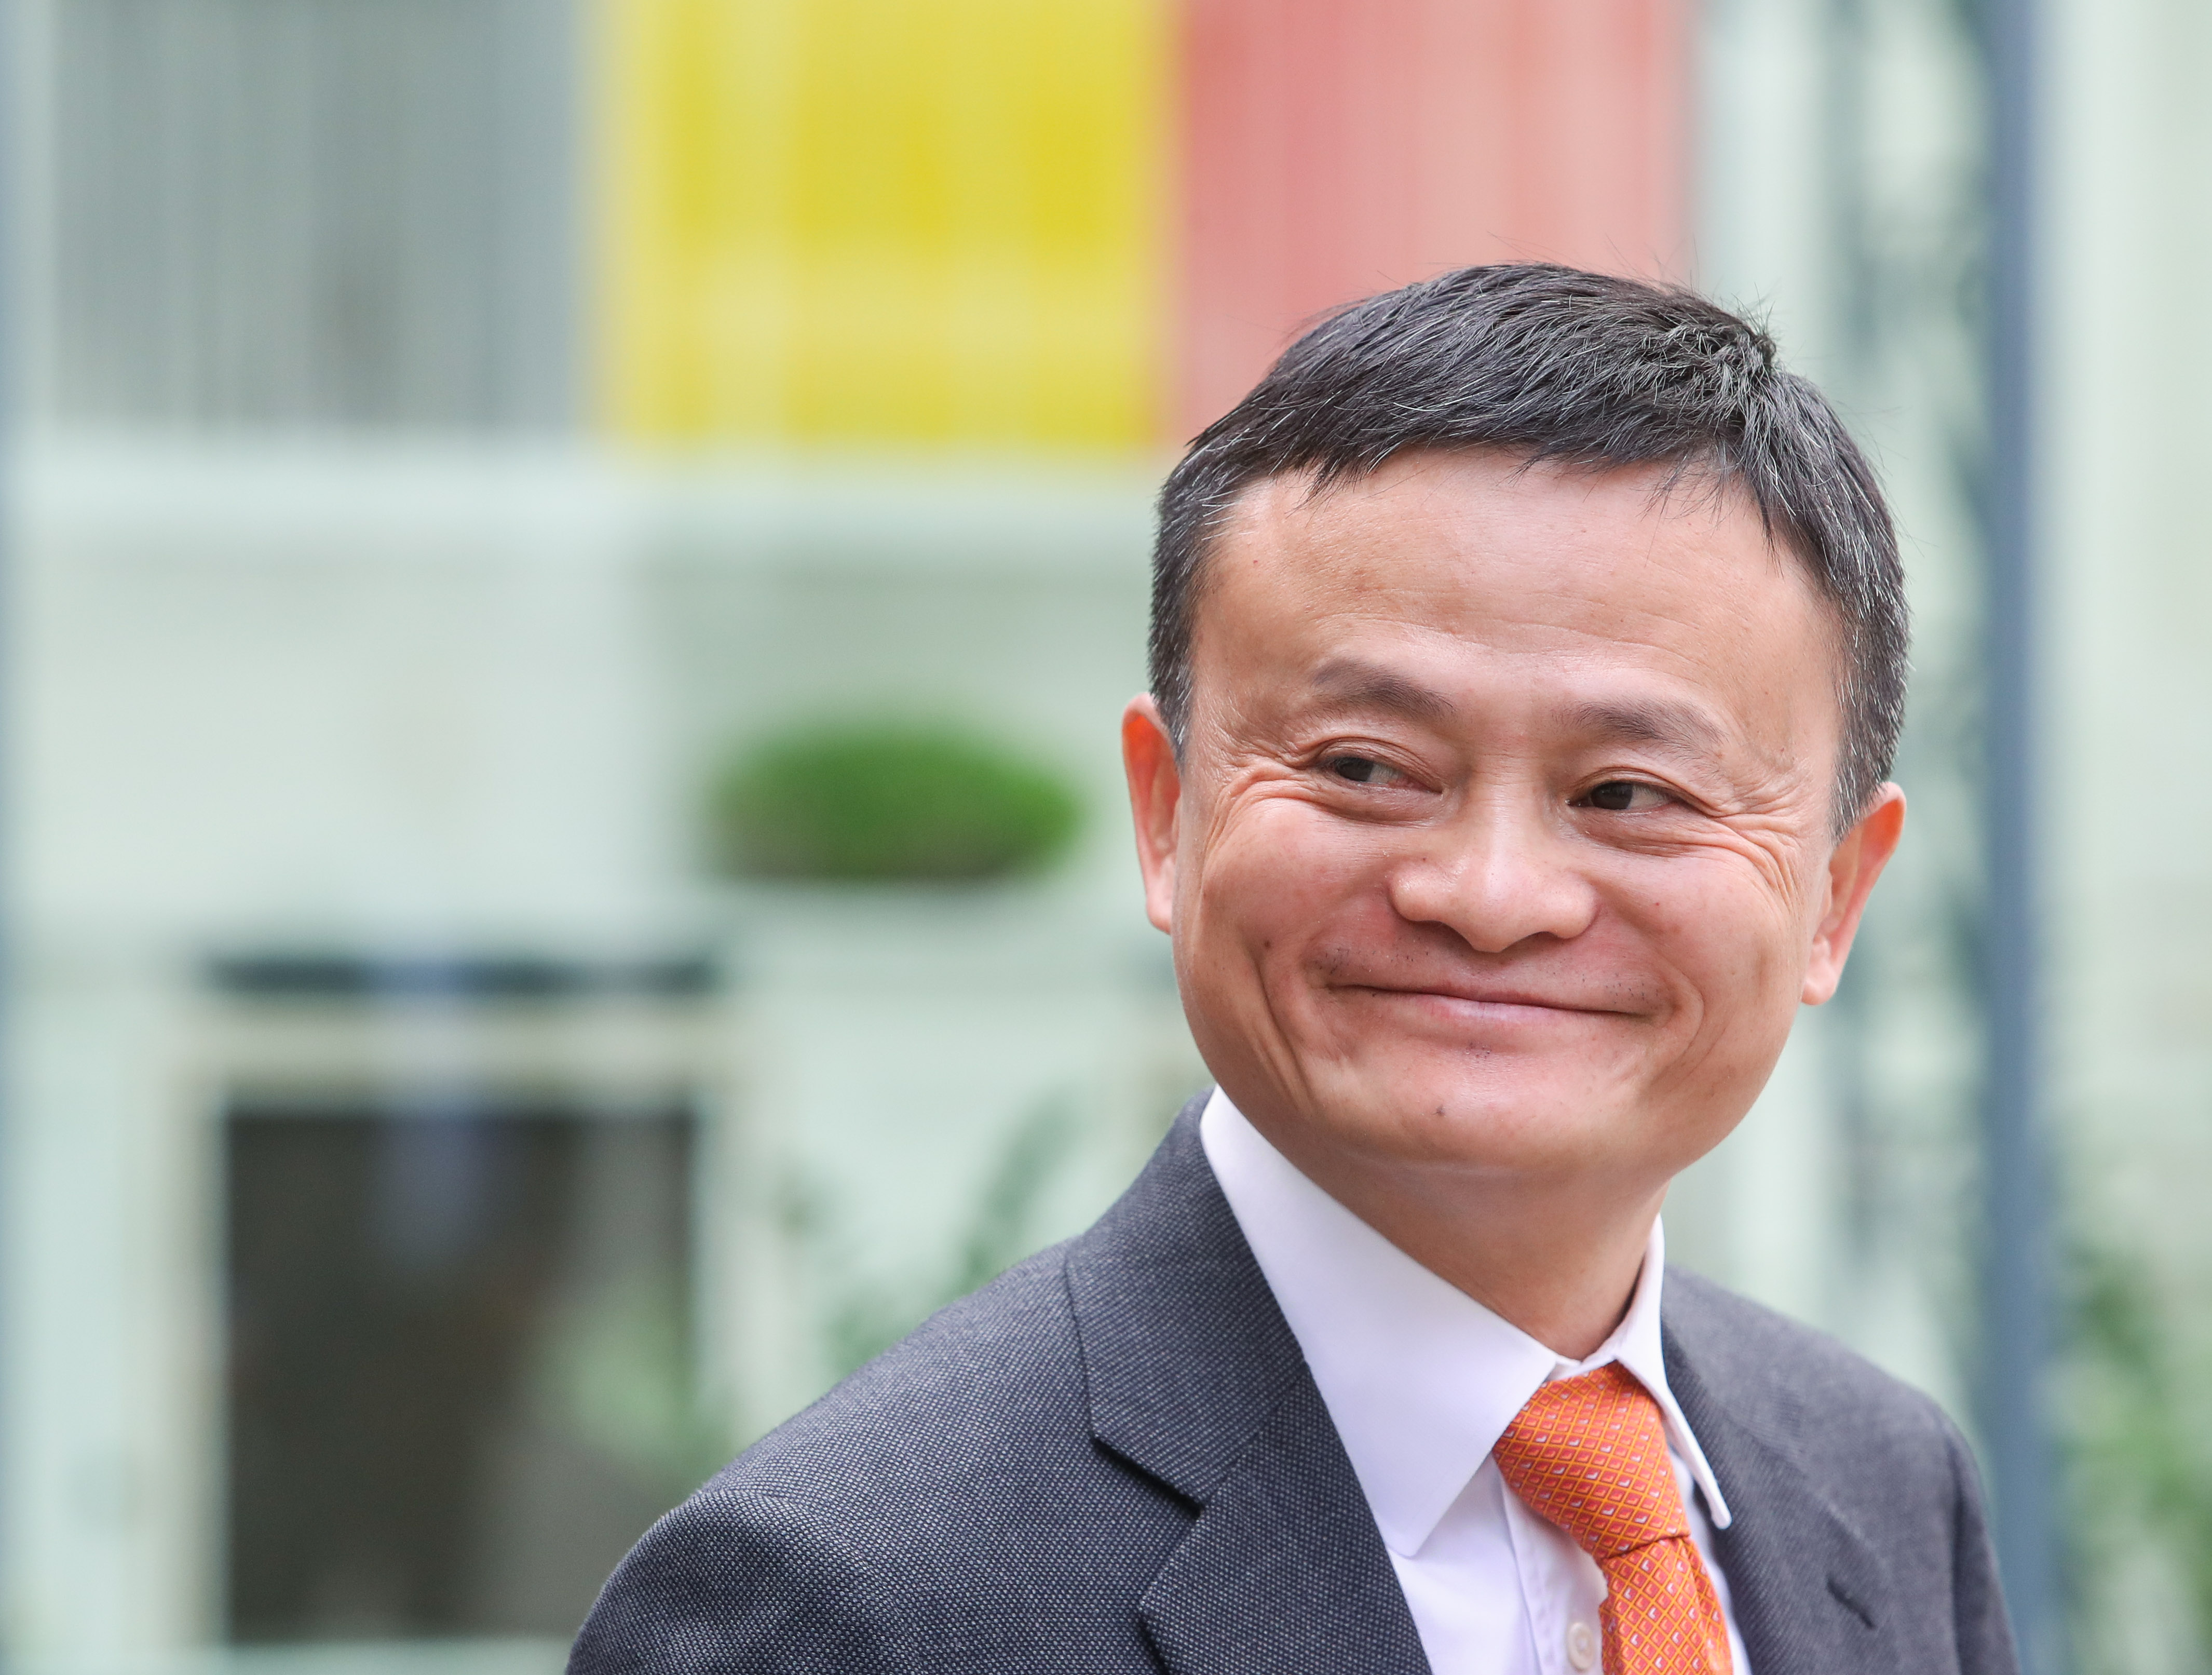 Jack Ma Founder and executive chairman of Chinese e-commerce company Alibaba Group in Brussels, Belgium - 03 Jul 2018Jack Ma, the founder and executive chairman of Chinese e-commerce company Alibaba Group arrives for a meeting with Belgian Prime Minister Charles Michel at the Lambermont in Brussels, Belgium, 03 July 2018.